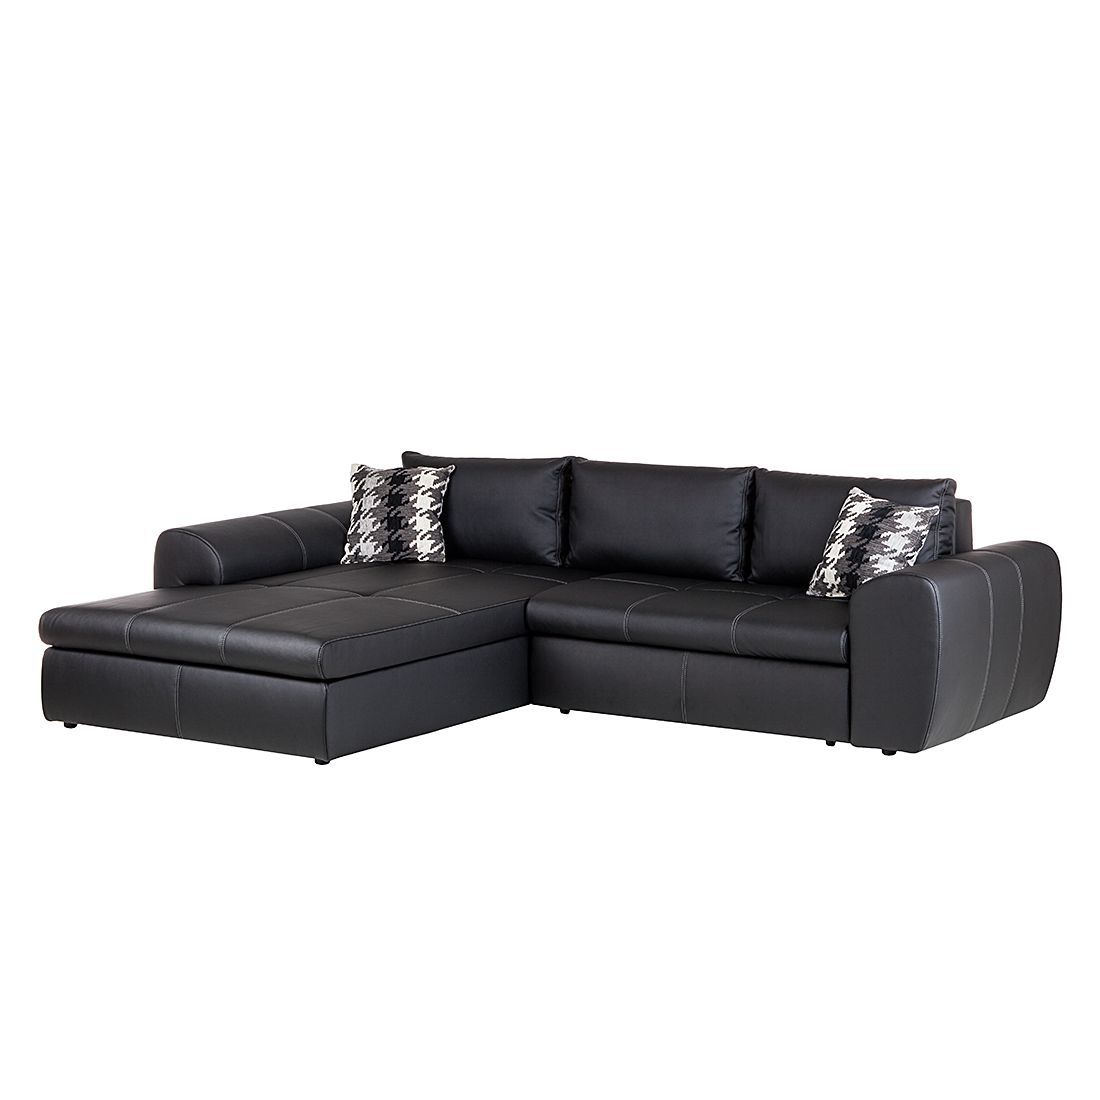 ecksofa mit schlaffunktion design inspirierendes design f r wohnm bel. Black Bedroom Furniture Sets. Home Design Ideas